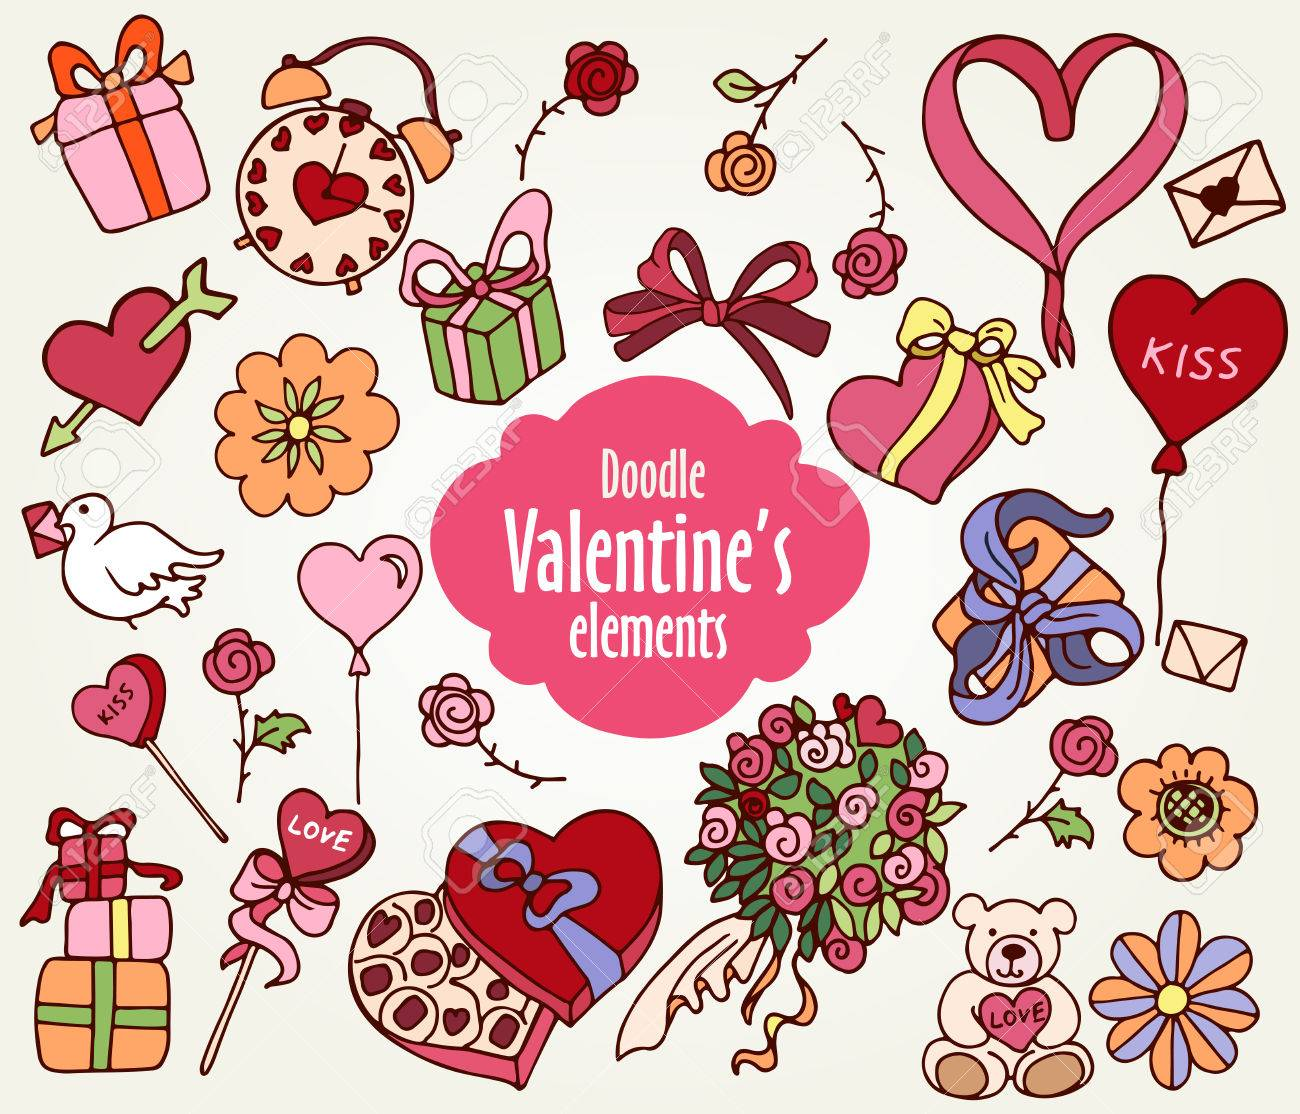 Cartoon Vector Elements For Valentines Day Presents Hearts Ribbons Flowers And Other